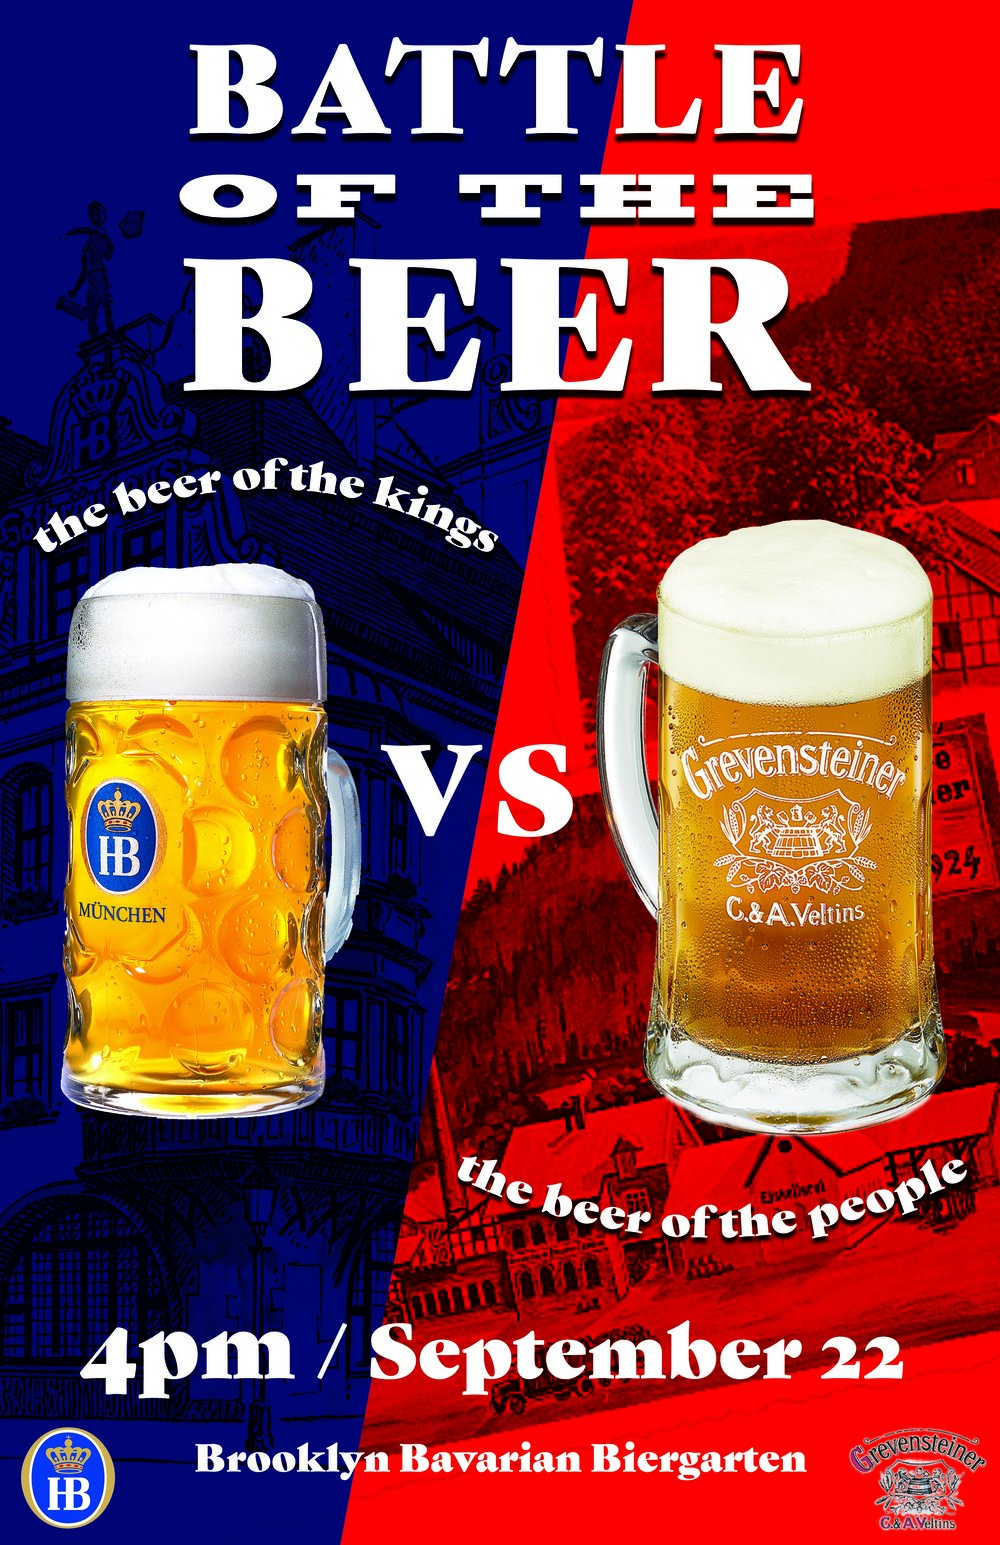 BROOKLYN BAVARIAN BIERGARTEN_BEER BATTLE.jpg